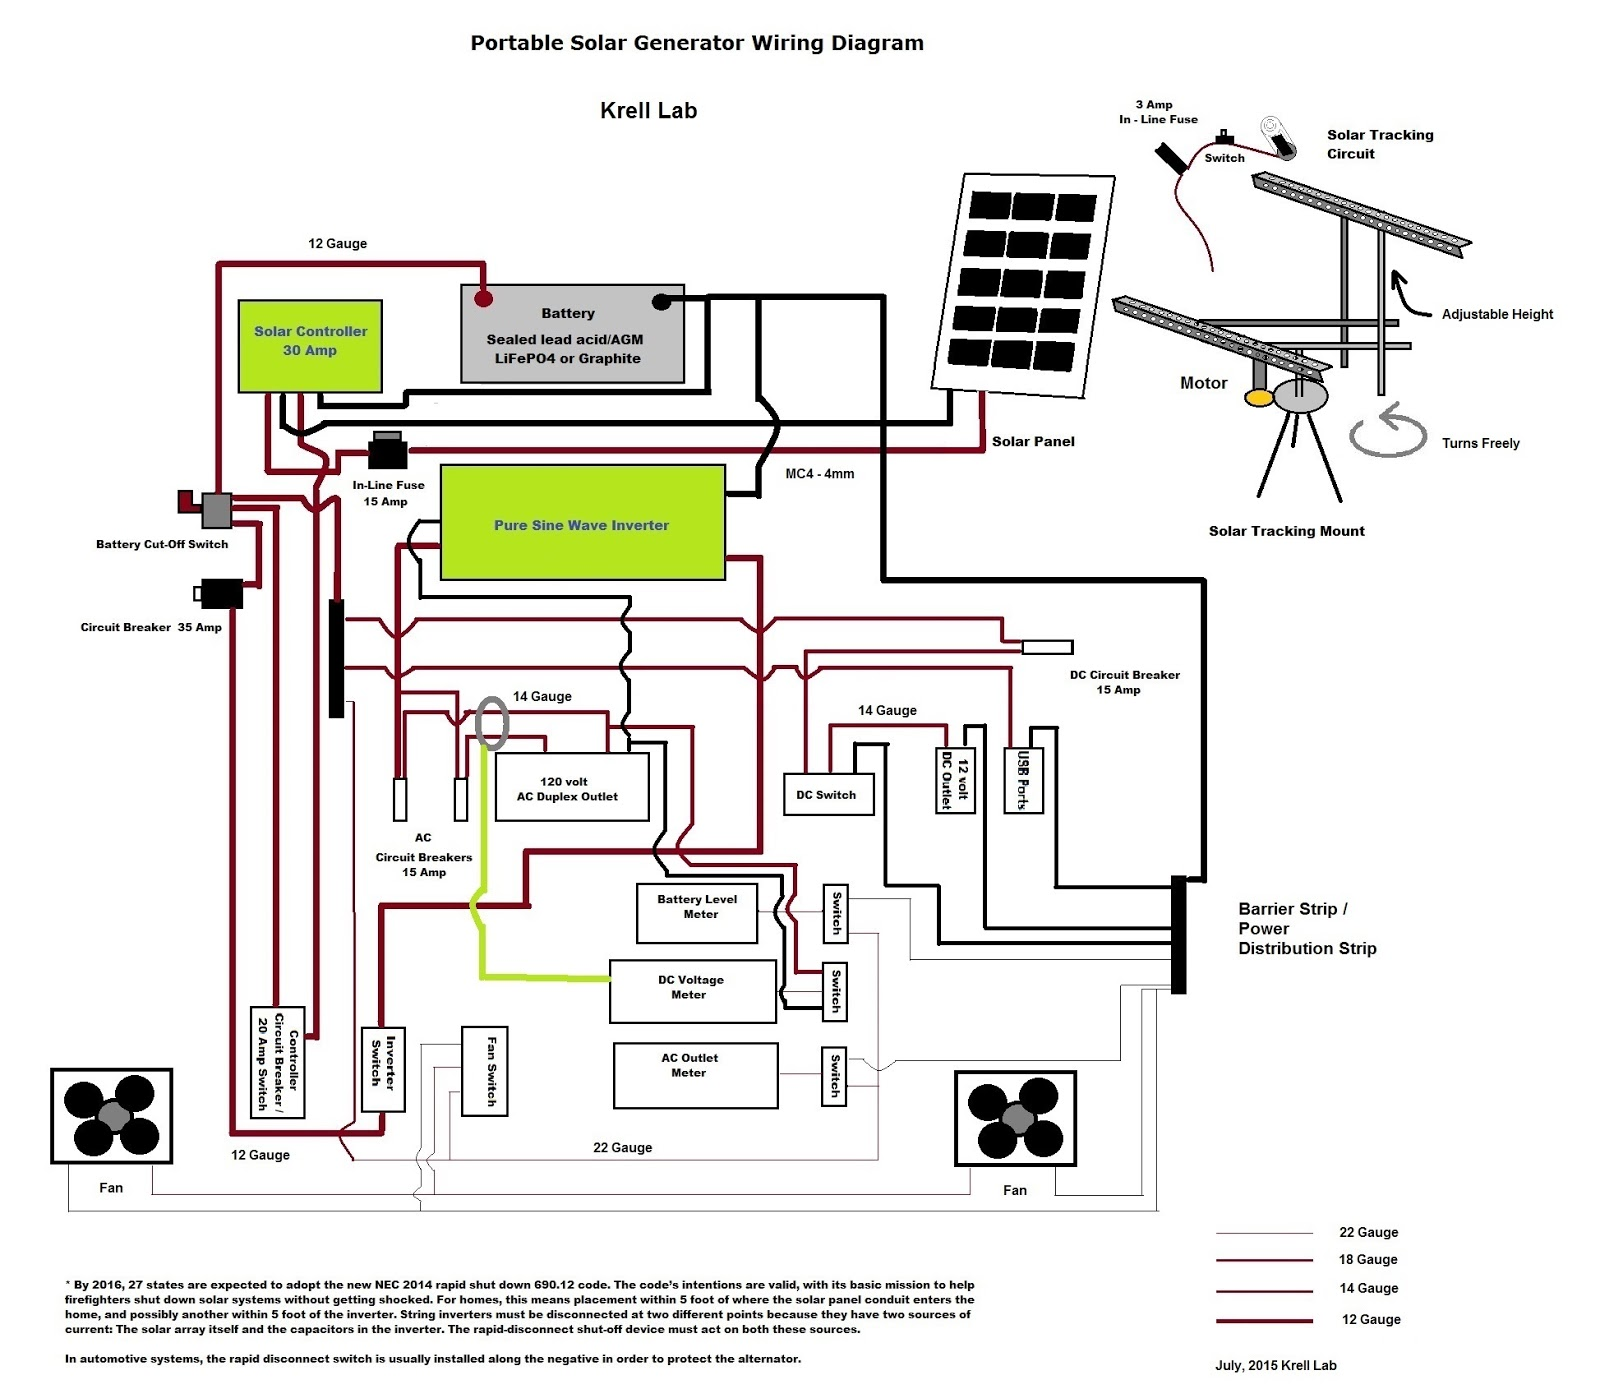 medium resolution of wrg 9165 lowe sunchaser pontoon wiring diagramthe krell lab portable solar generator in a battery